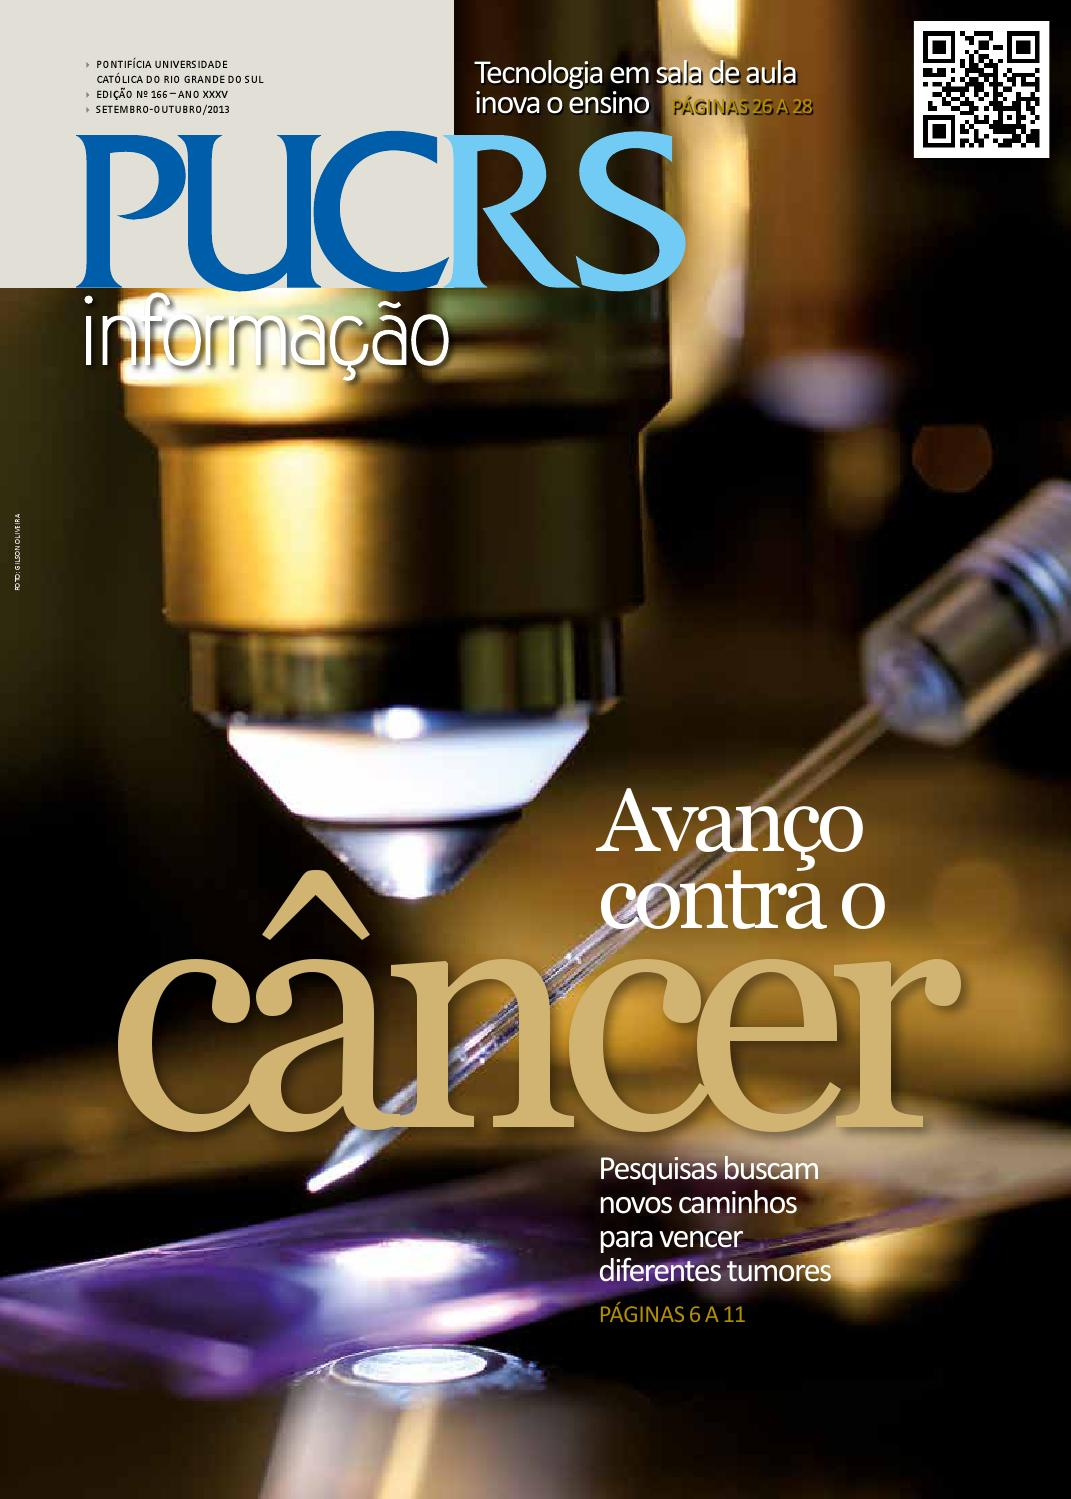 Revista pucrs informao n 166 by pucrs issuu fandeluxe Image collections